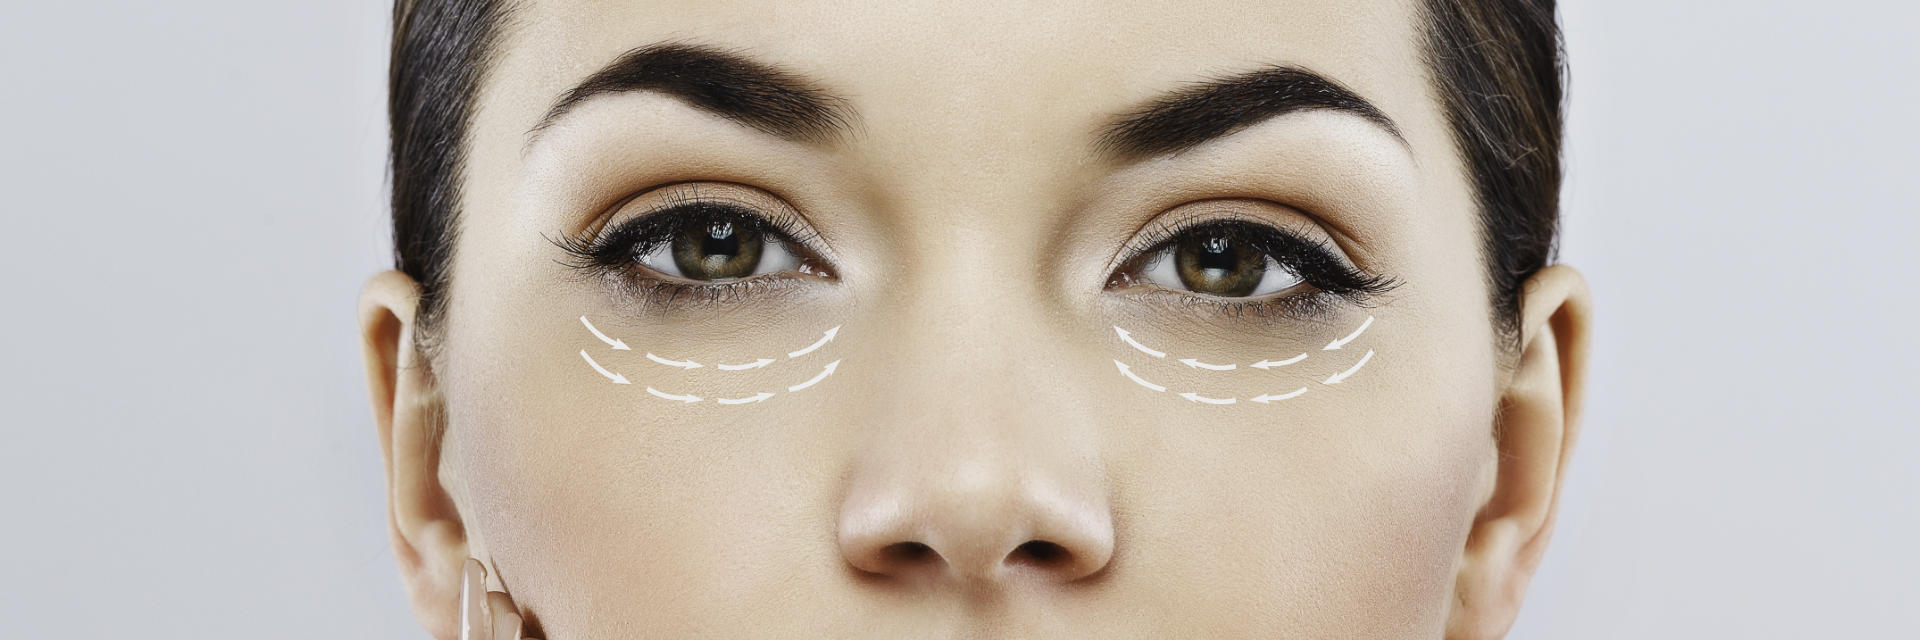 upper face of a woman with arrows showing skin tension lines under eyes